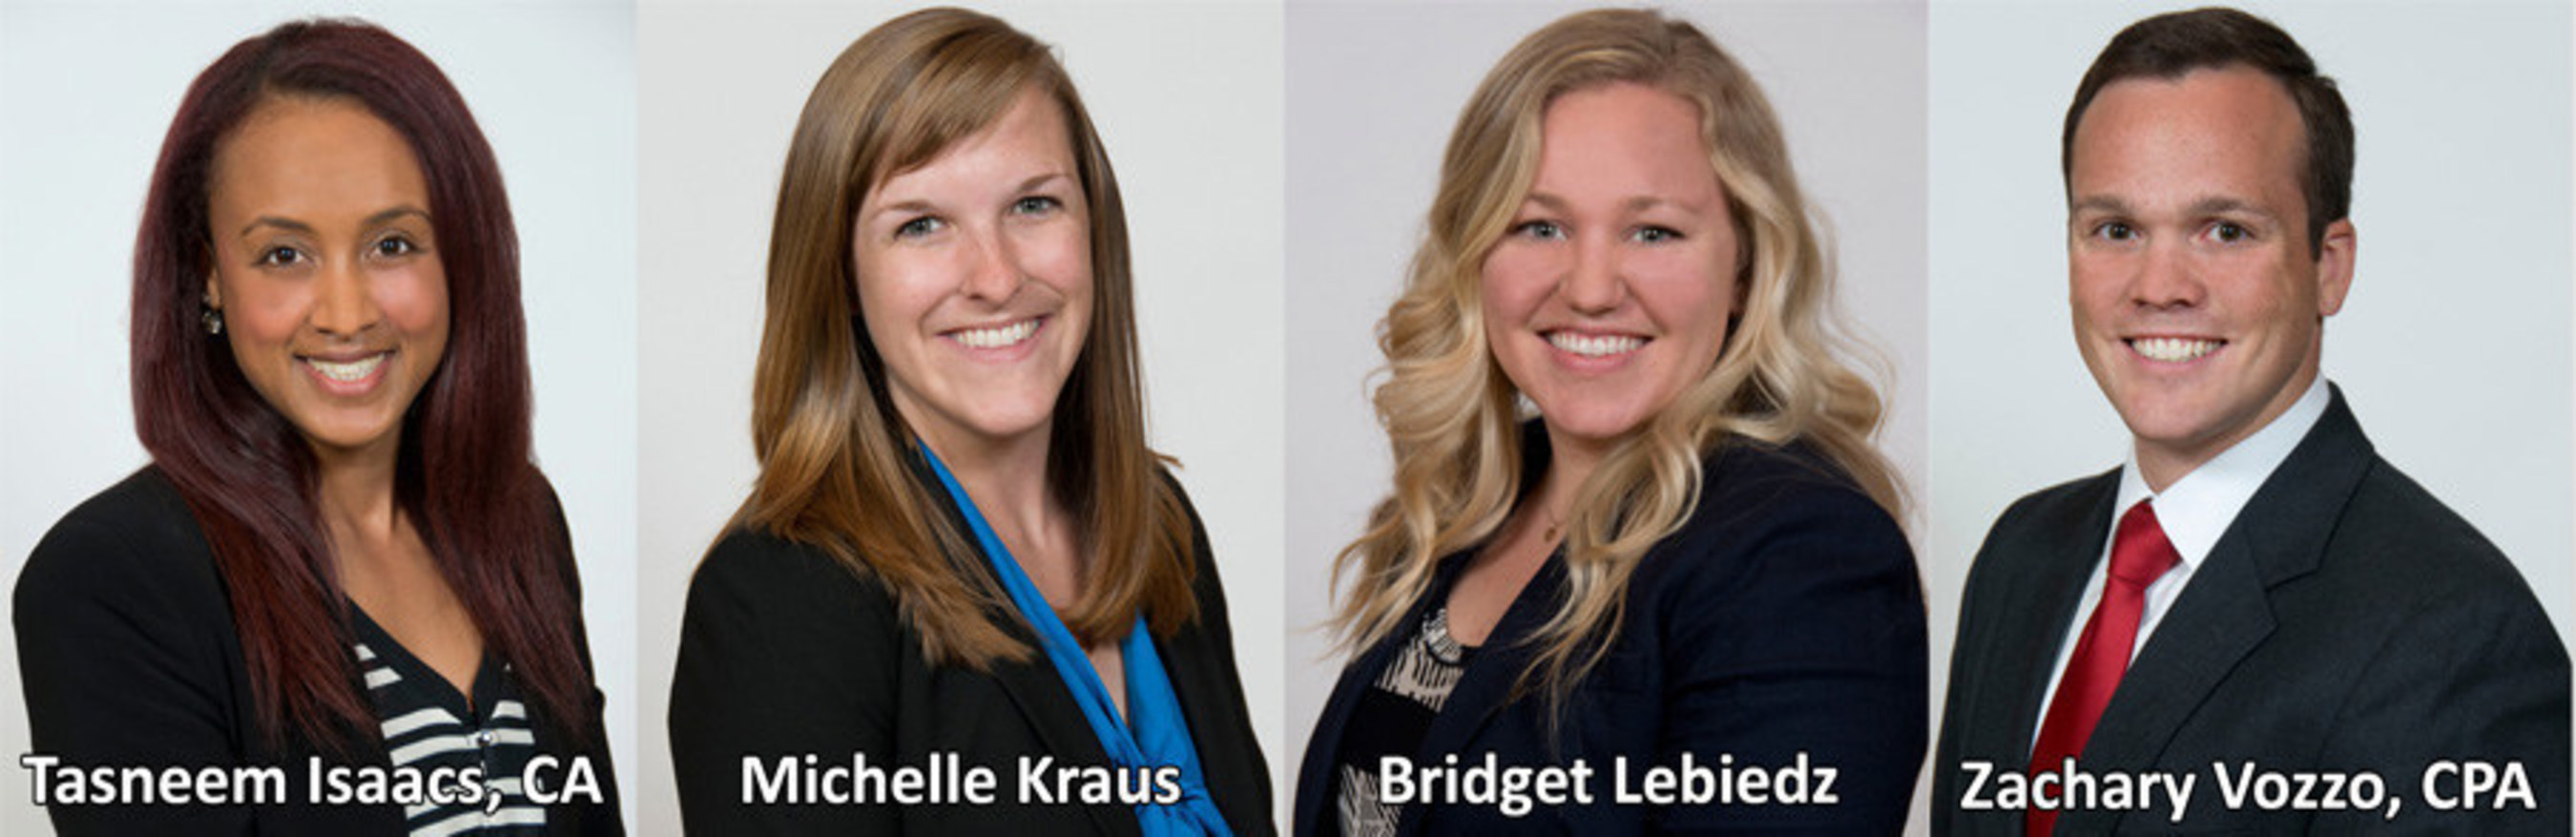 The Siegfried Group, LLP Welcomes New Professionals from the Central Region for New Hire